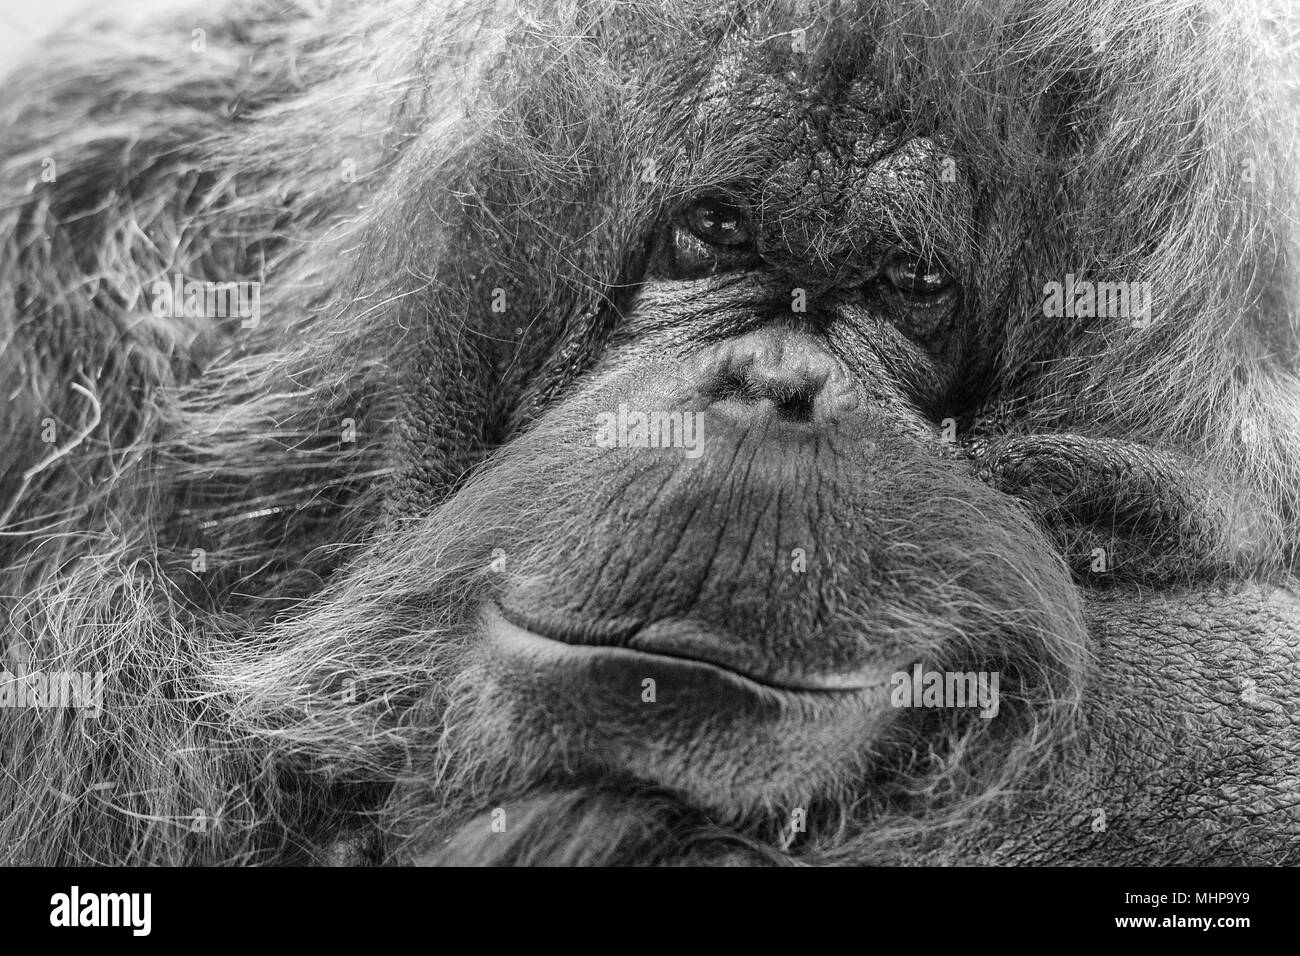 orang utan monkey looking at you in black and white Stock Photo